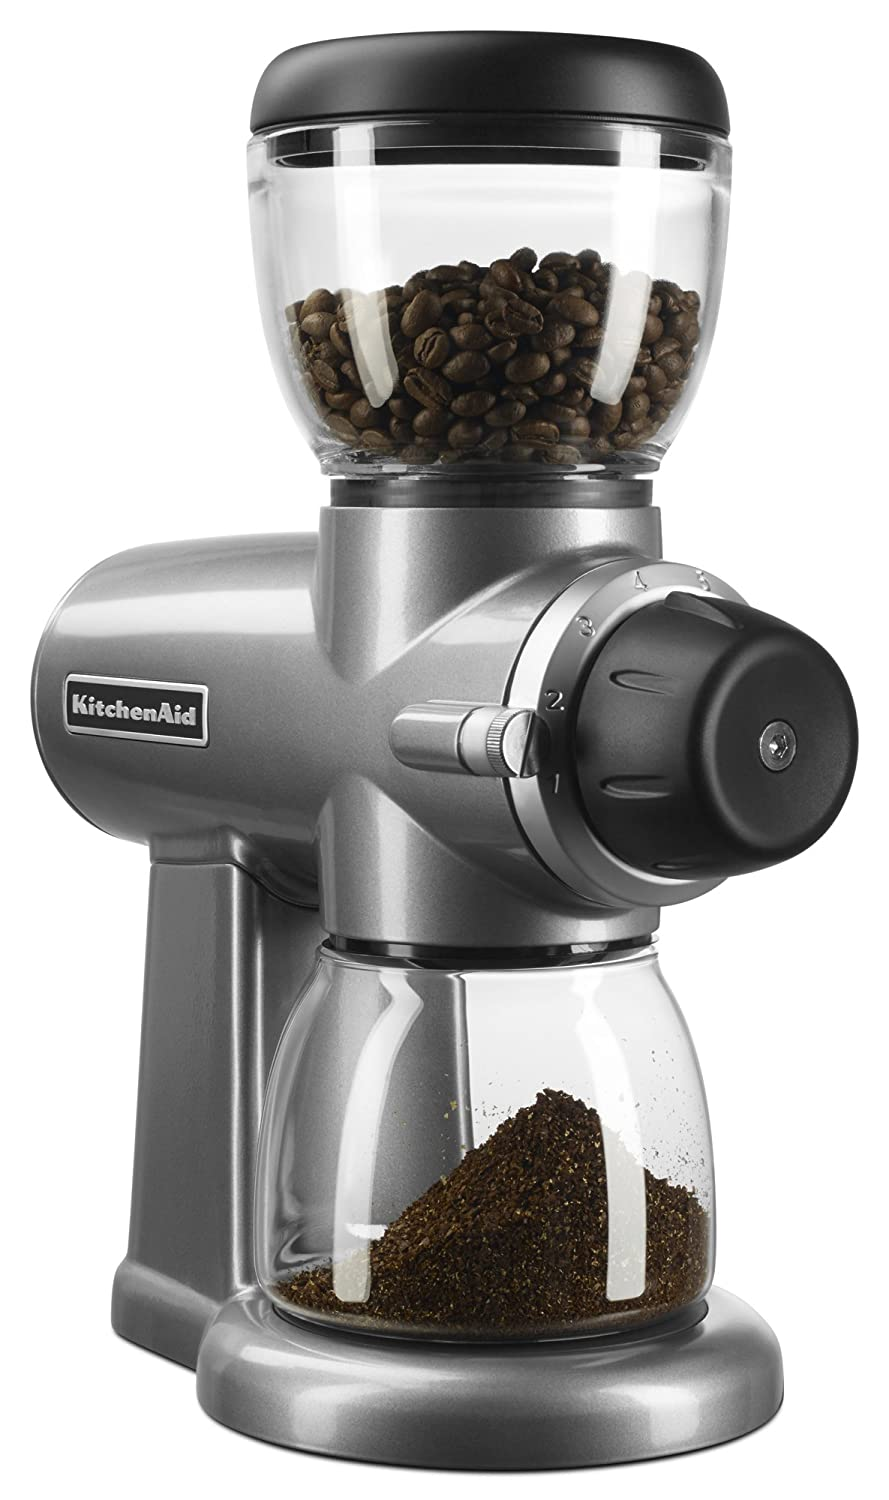 KitchenAid KCG0702CU Burr Coffee Grinder Review